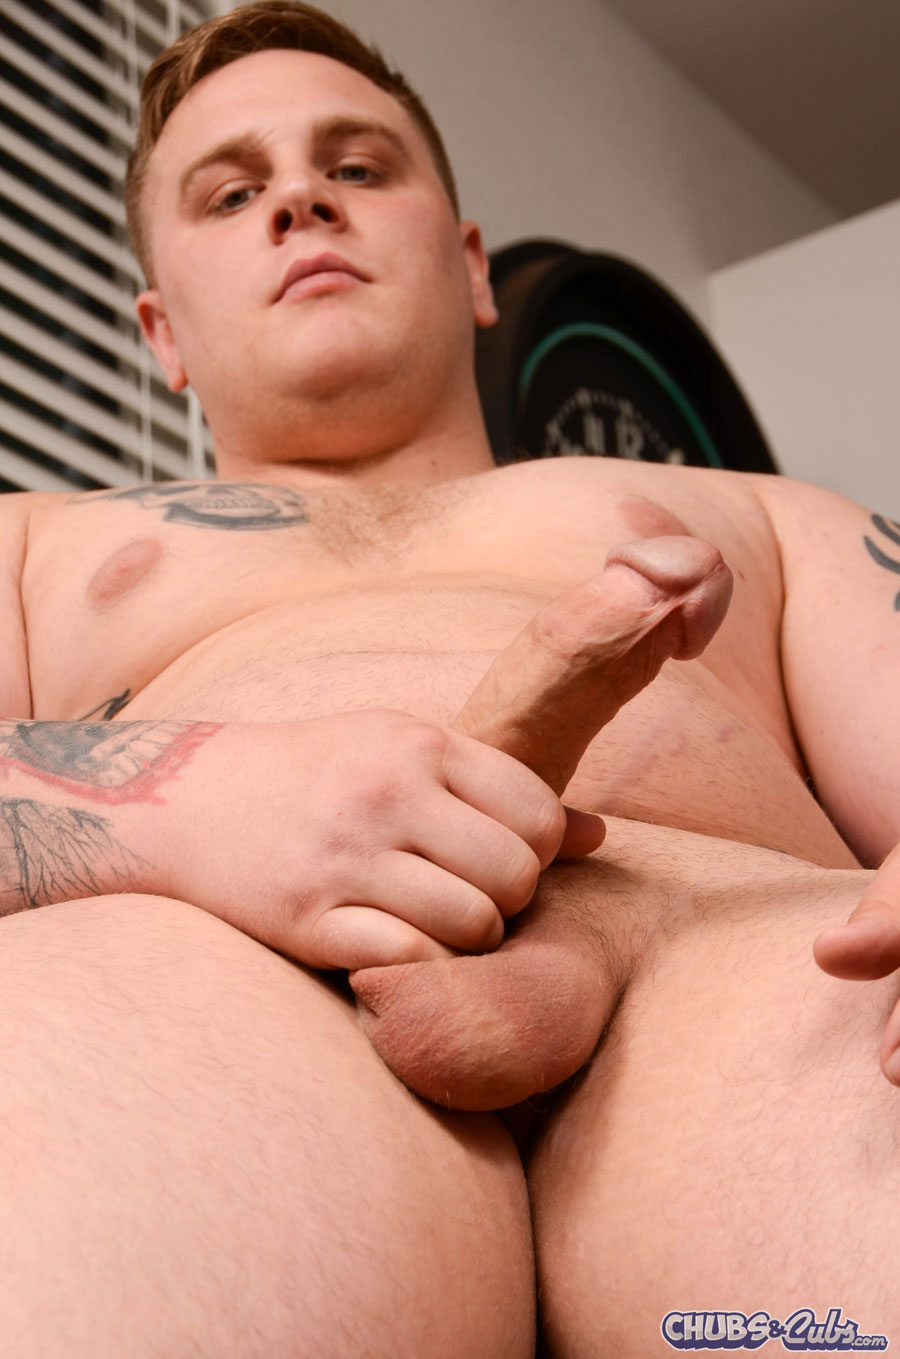 sex homo education escort porn site